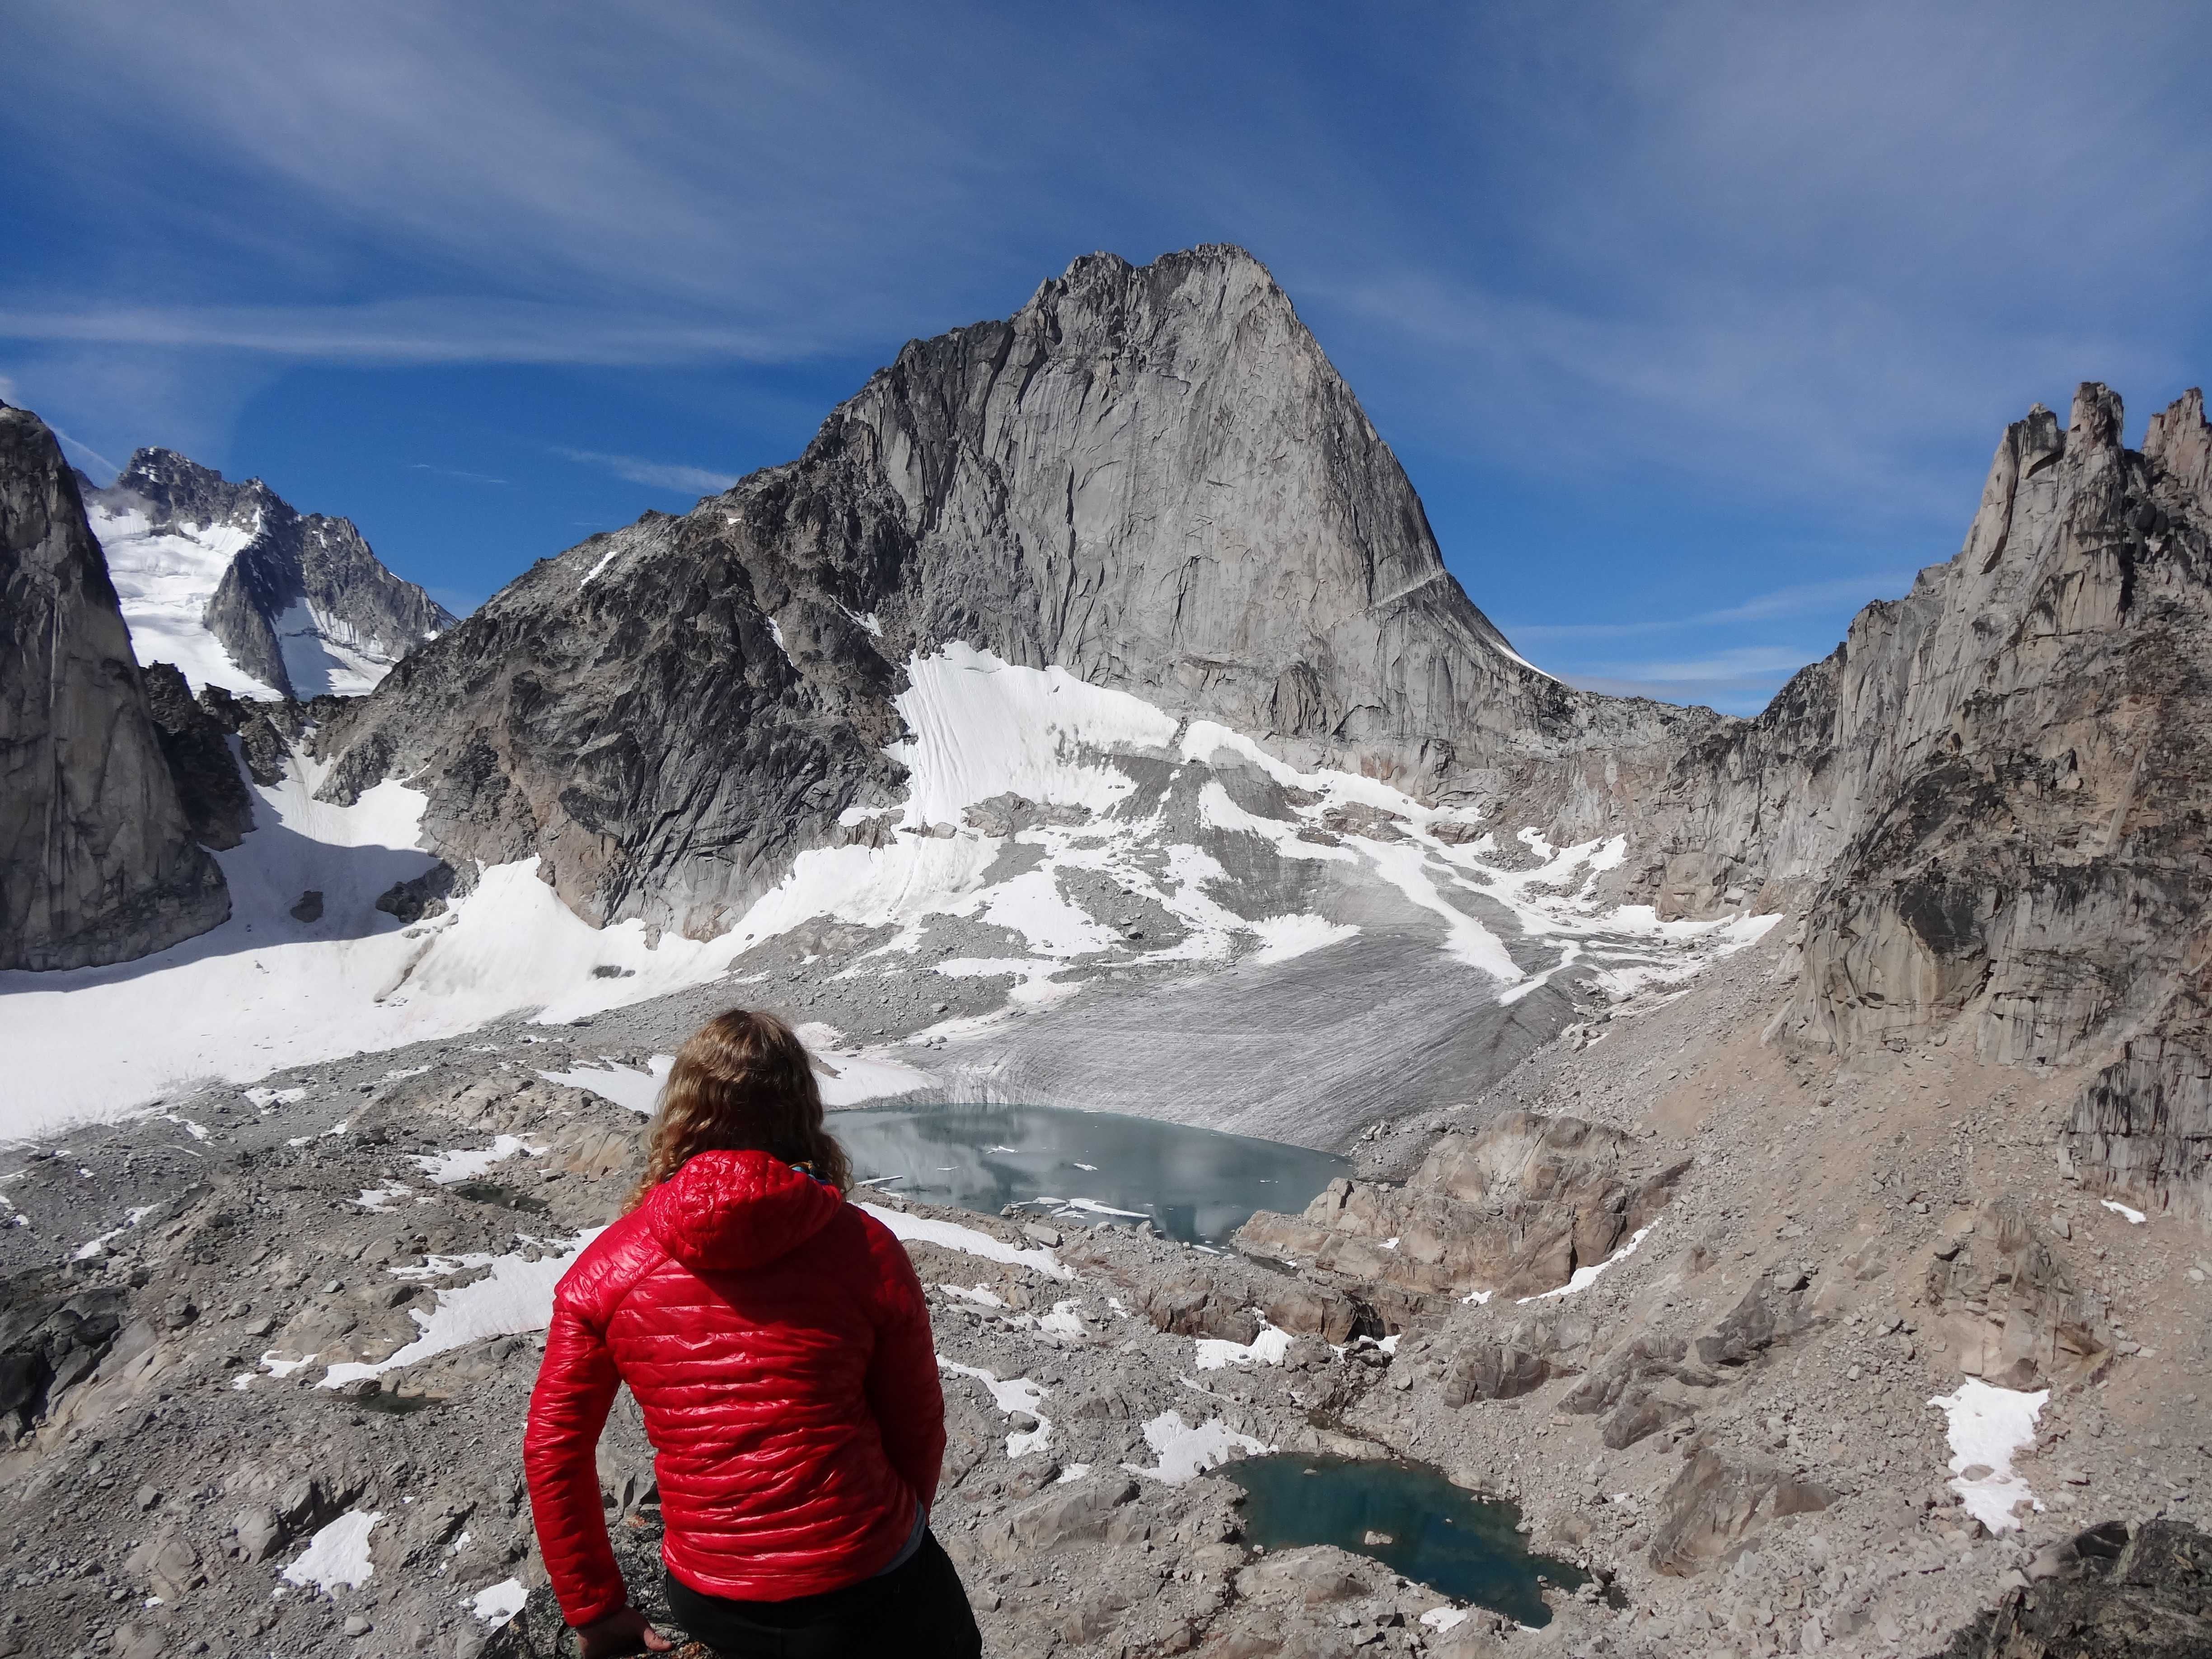 Woman In Red Coat Looking At A Glaciated Alpine Peak